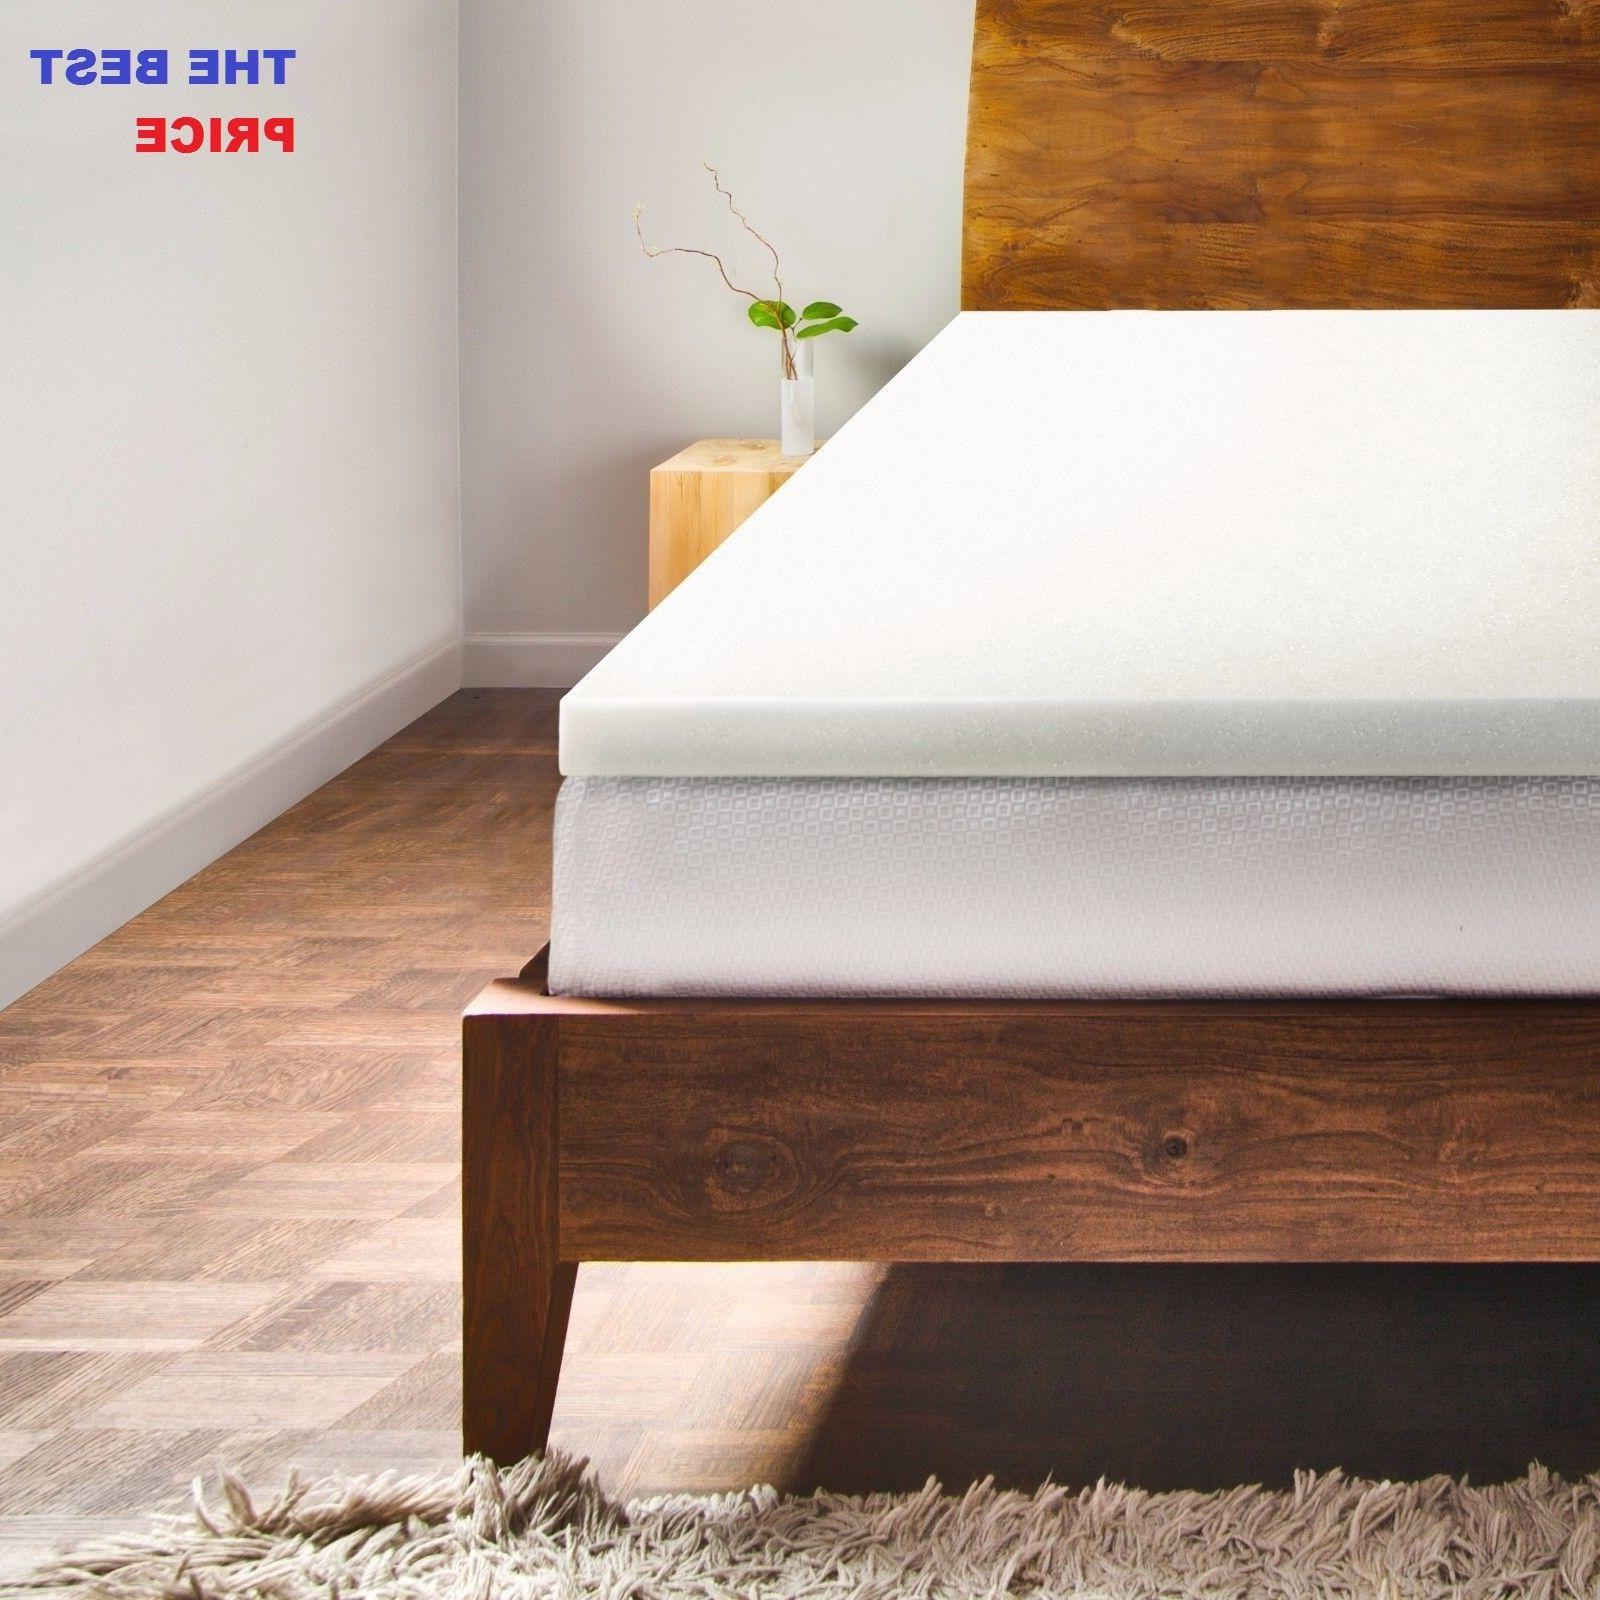 2 memory foam mattress topper and bed